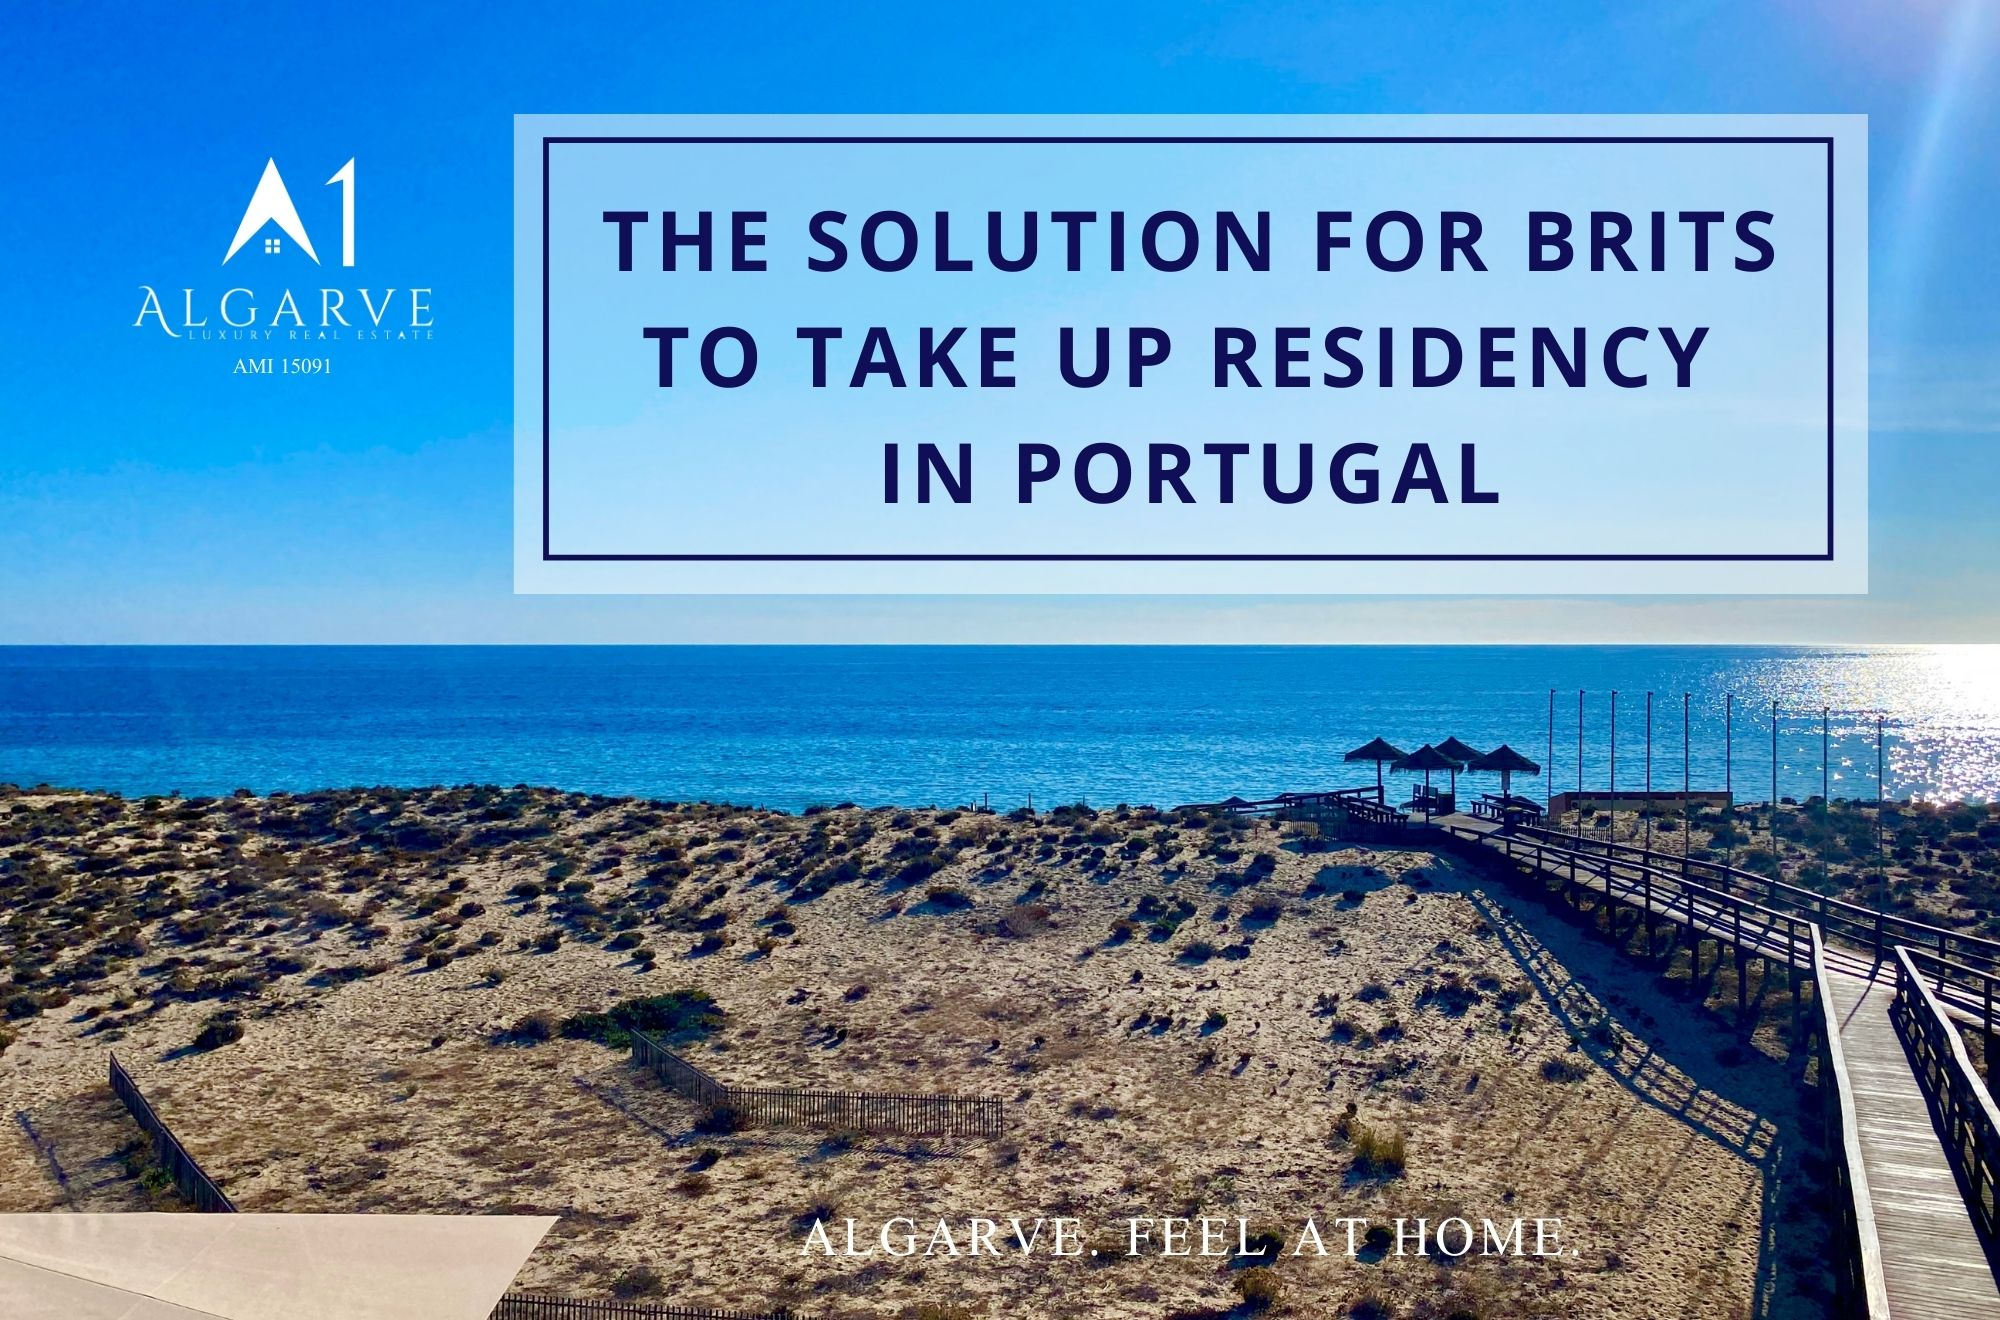 THE SOLUTION FOR BRITS TO TAKE UP RESIDENCY IN PORTUGAL